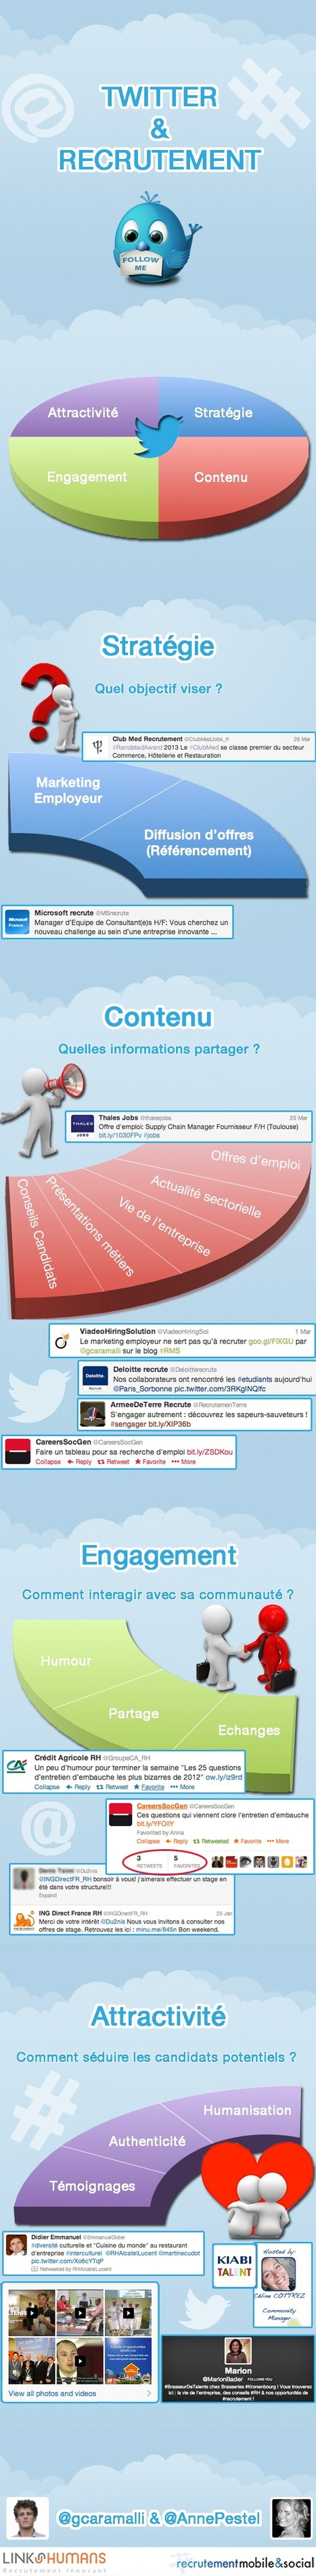 Etude des Comptes Twitter Carrières [Infographie] | Time to Learn | Scoop.it